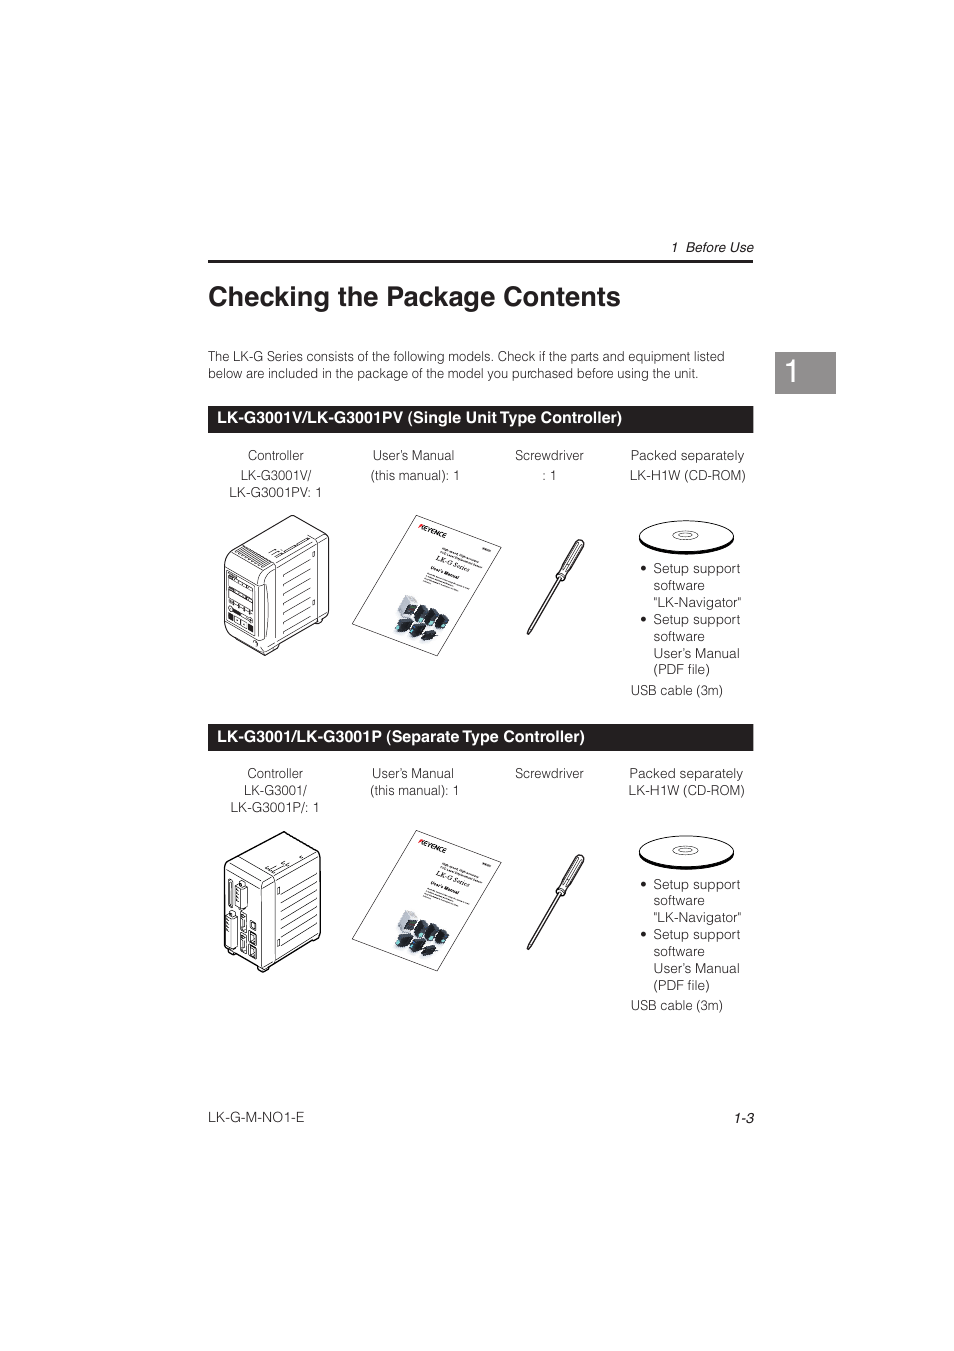 Checking the package contents, Lk-g3001v/lk-g3001pv